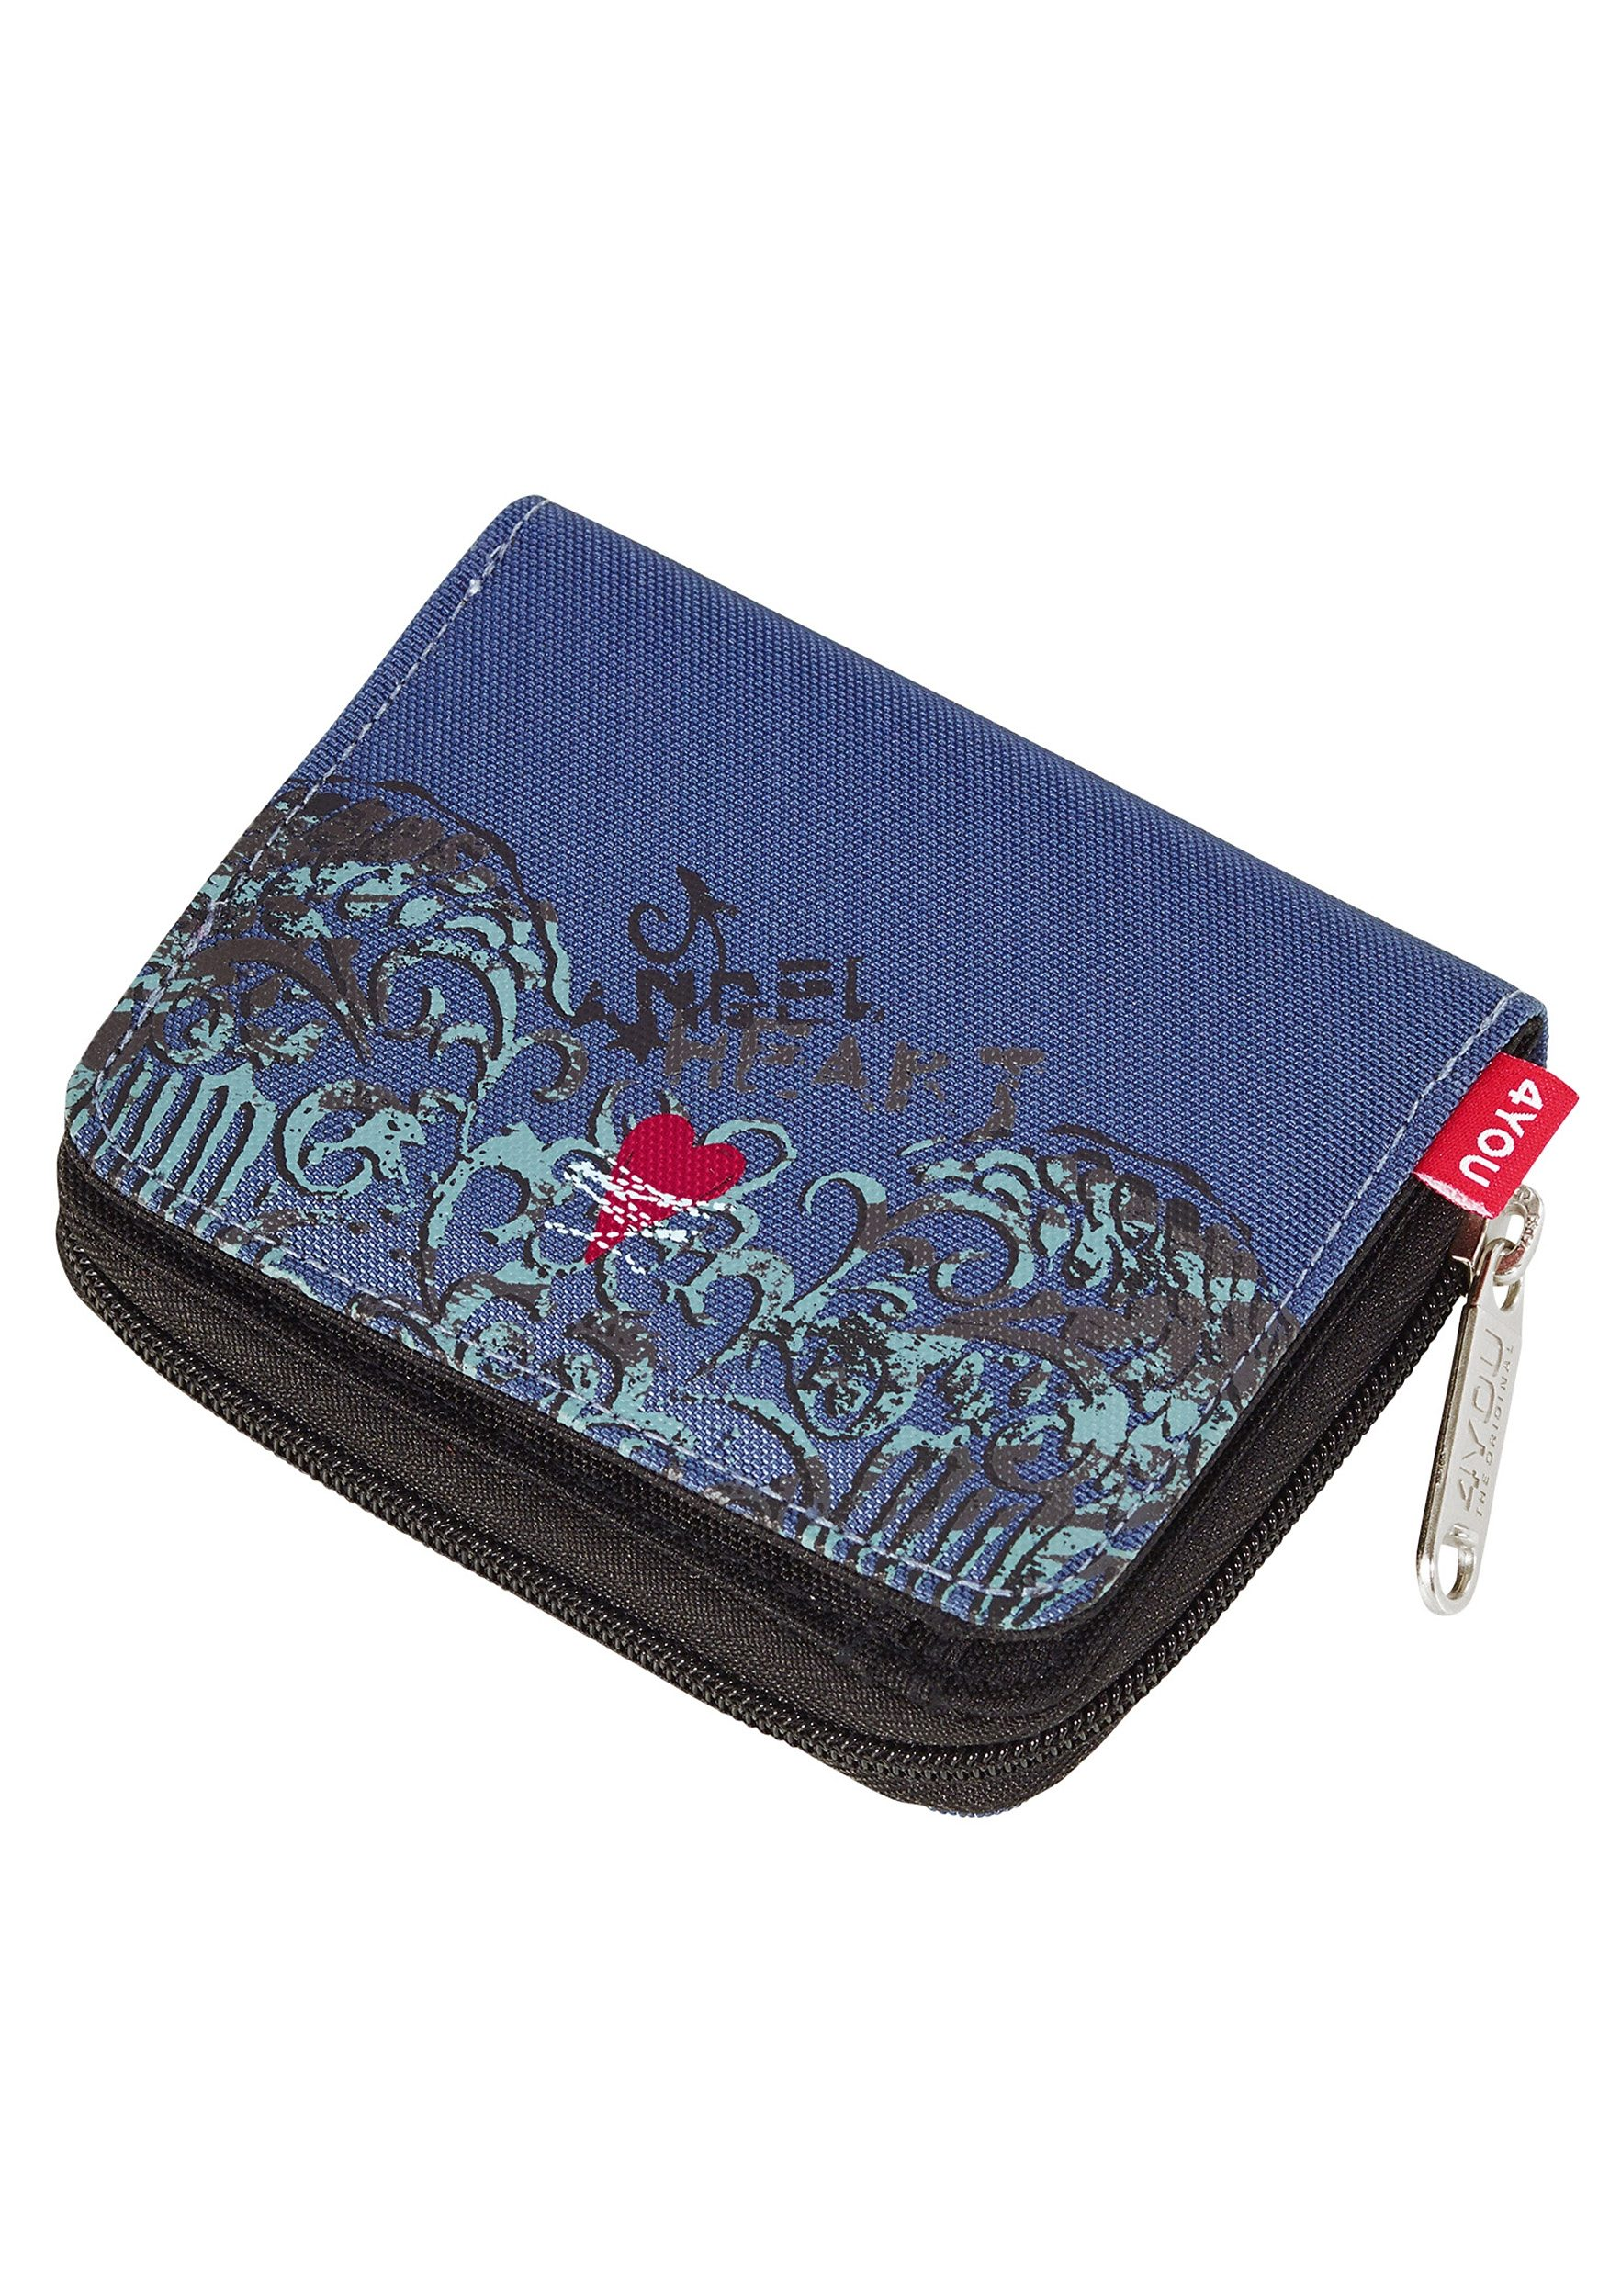 4YOU Geldbörse, »Zipper Wallet - Angel Heart«